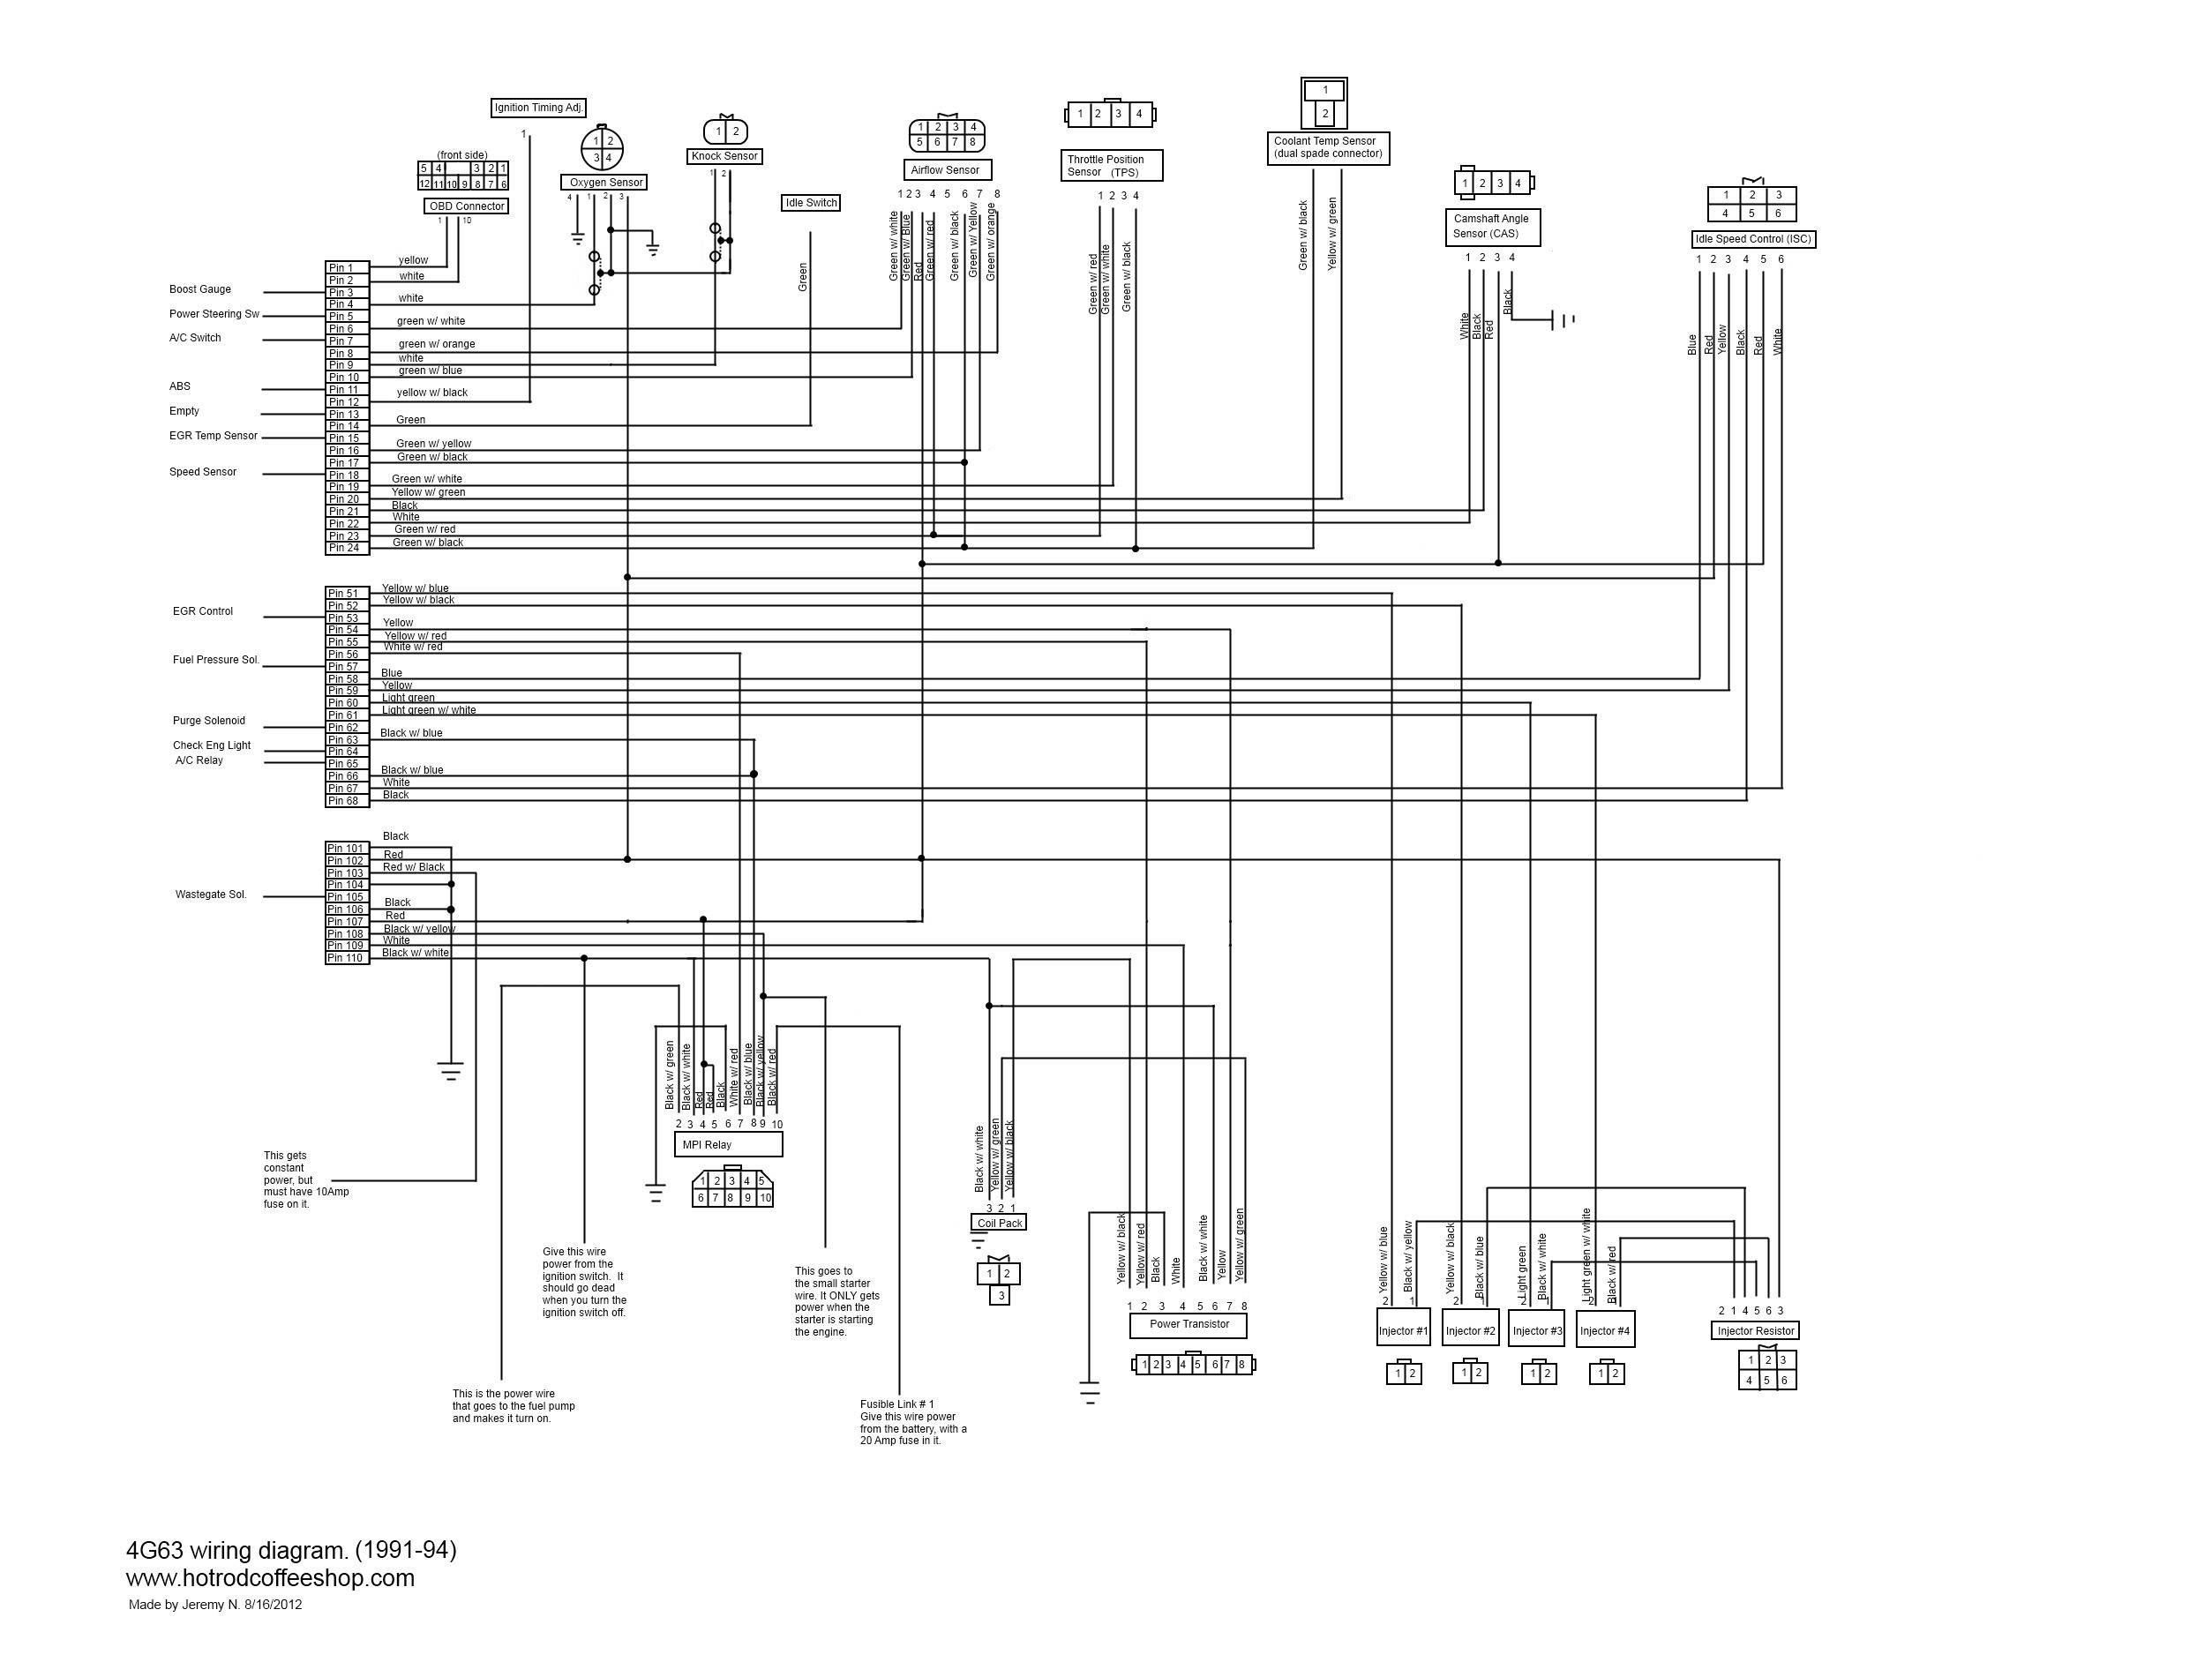 Mitsubishi Galant Engine Diagram Mitsubishi Car